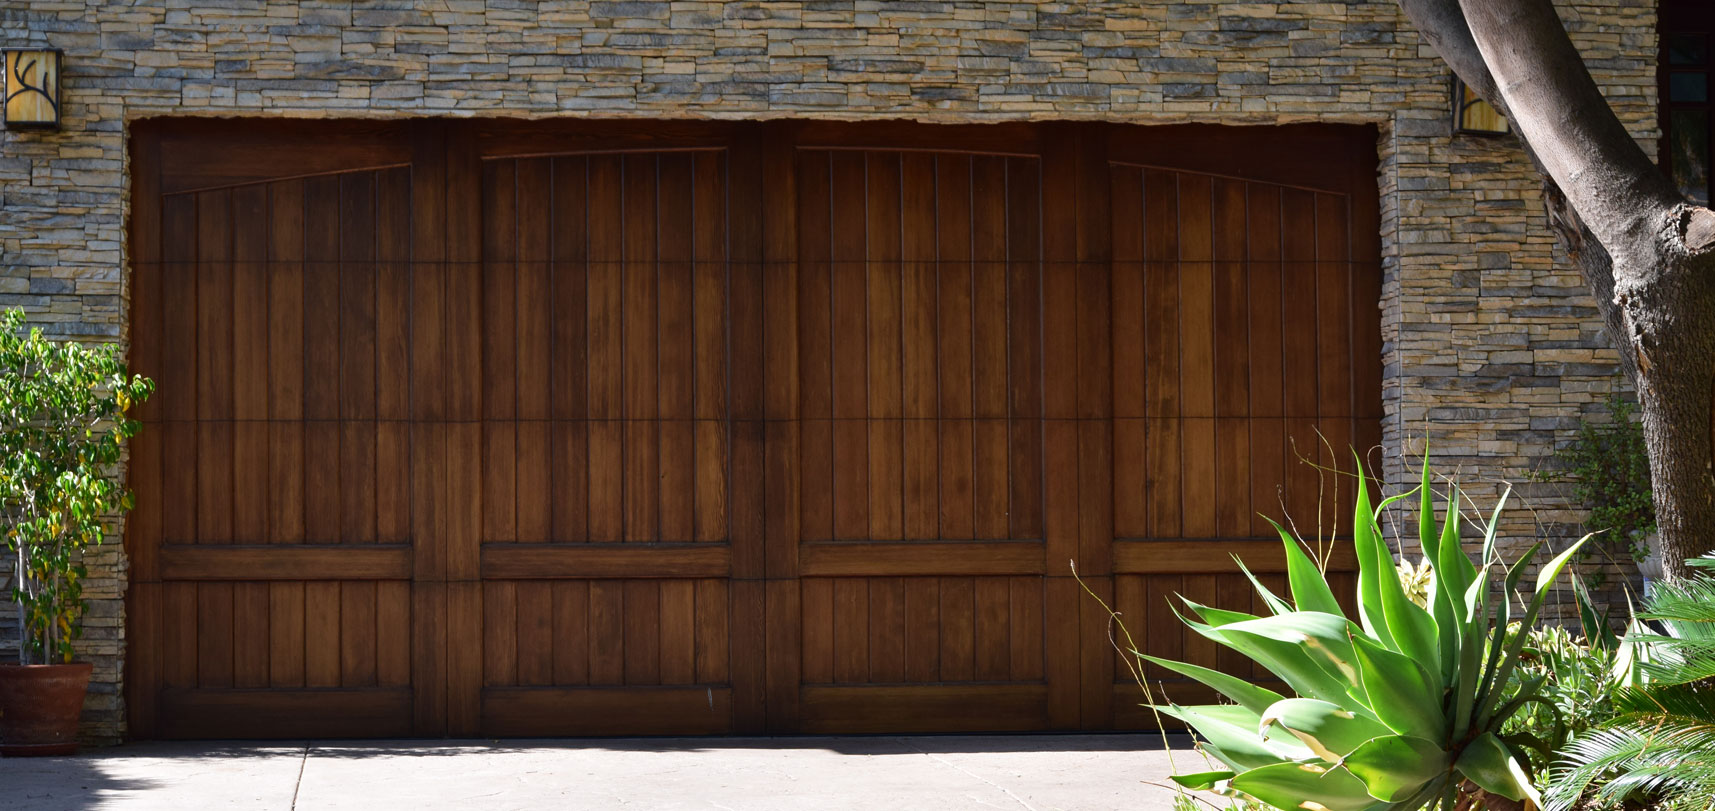 Full Custom Garage Doors By Elegant